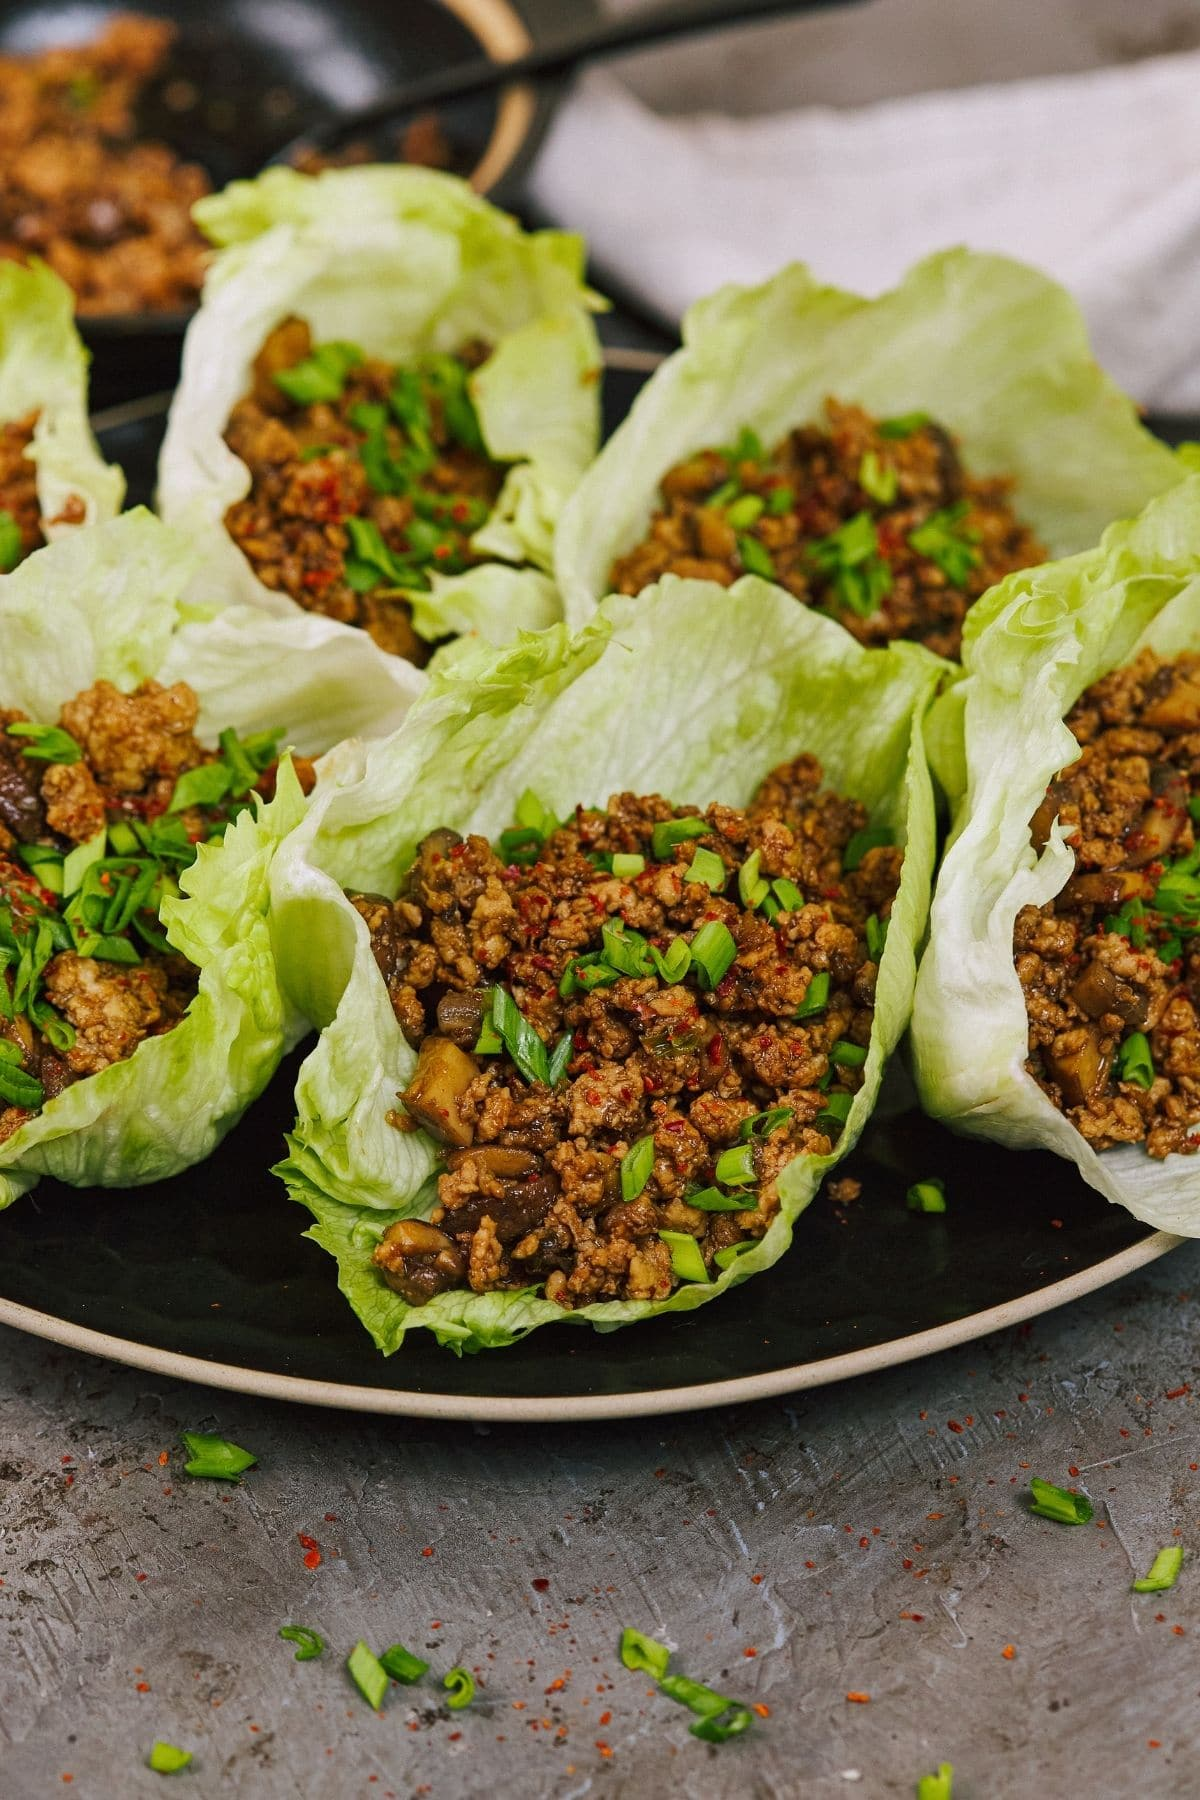 Lettuce filled with ground chicken sitting on black plate on brown counter